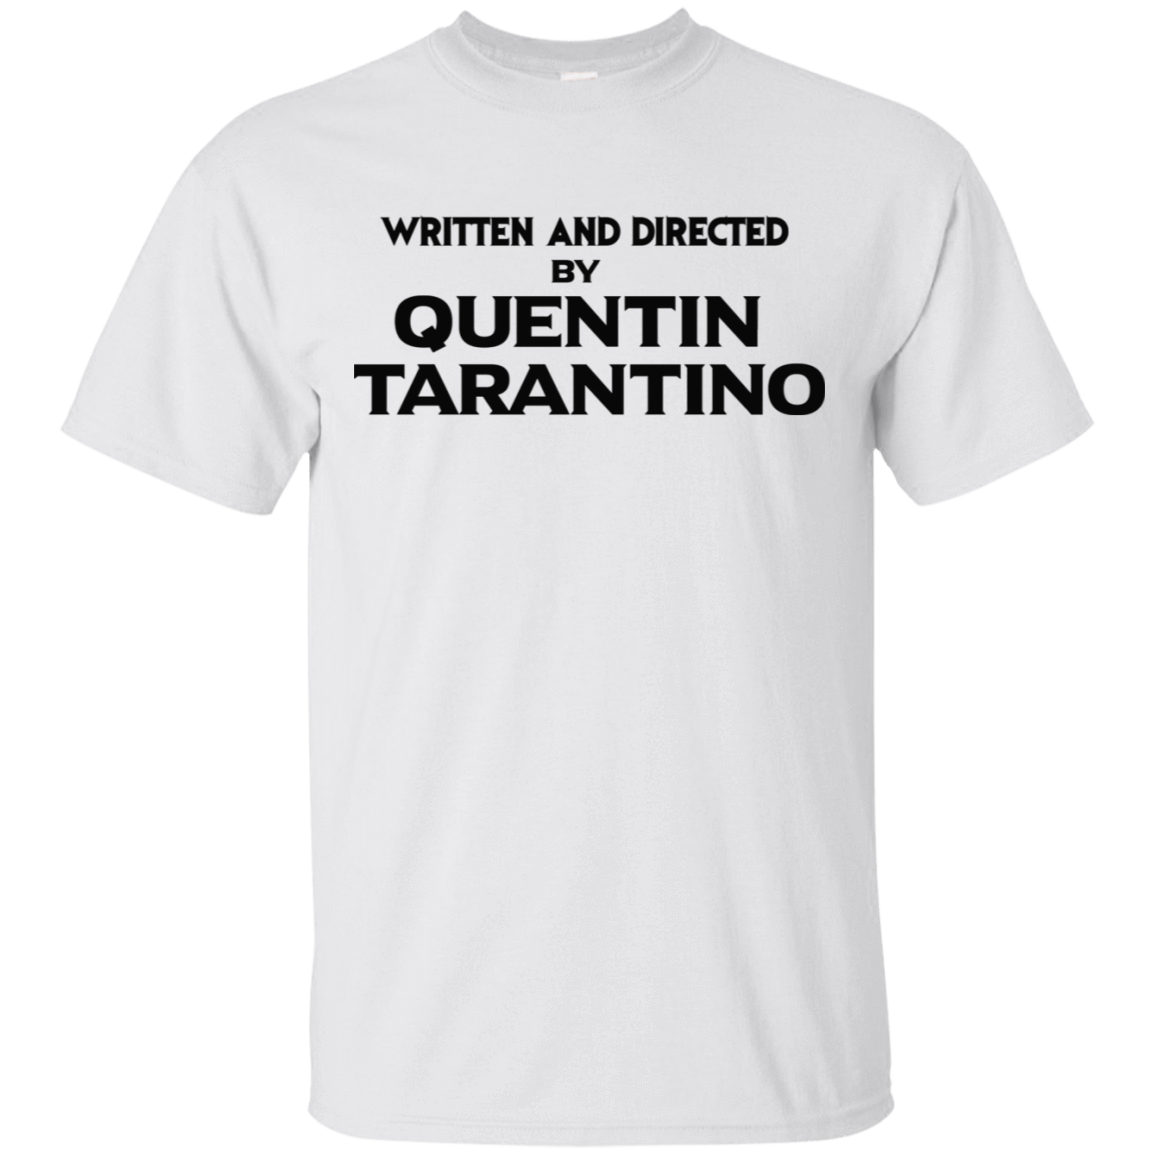 Written And Directed By Quentin Tarantino 22-114-71738998-253 - Tee Ript